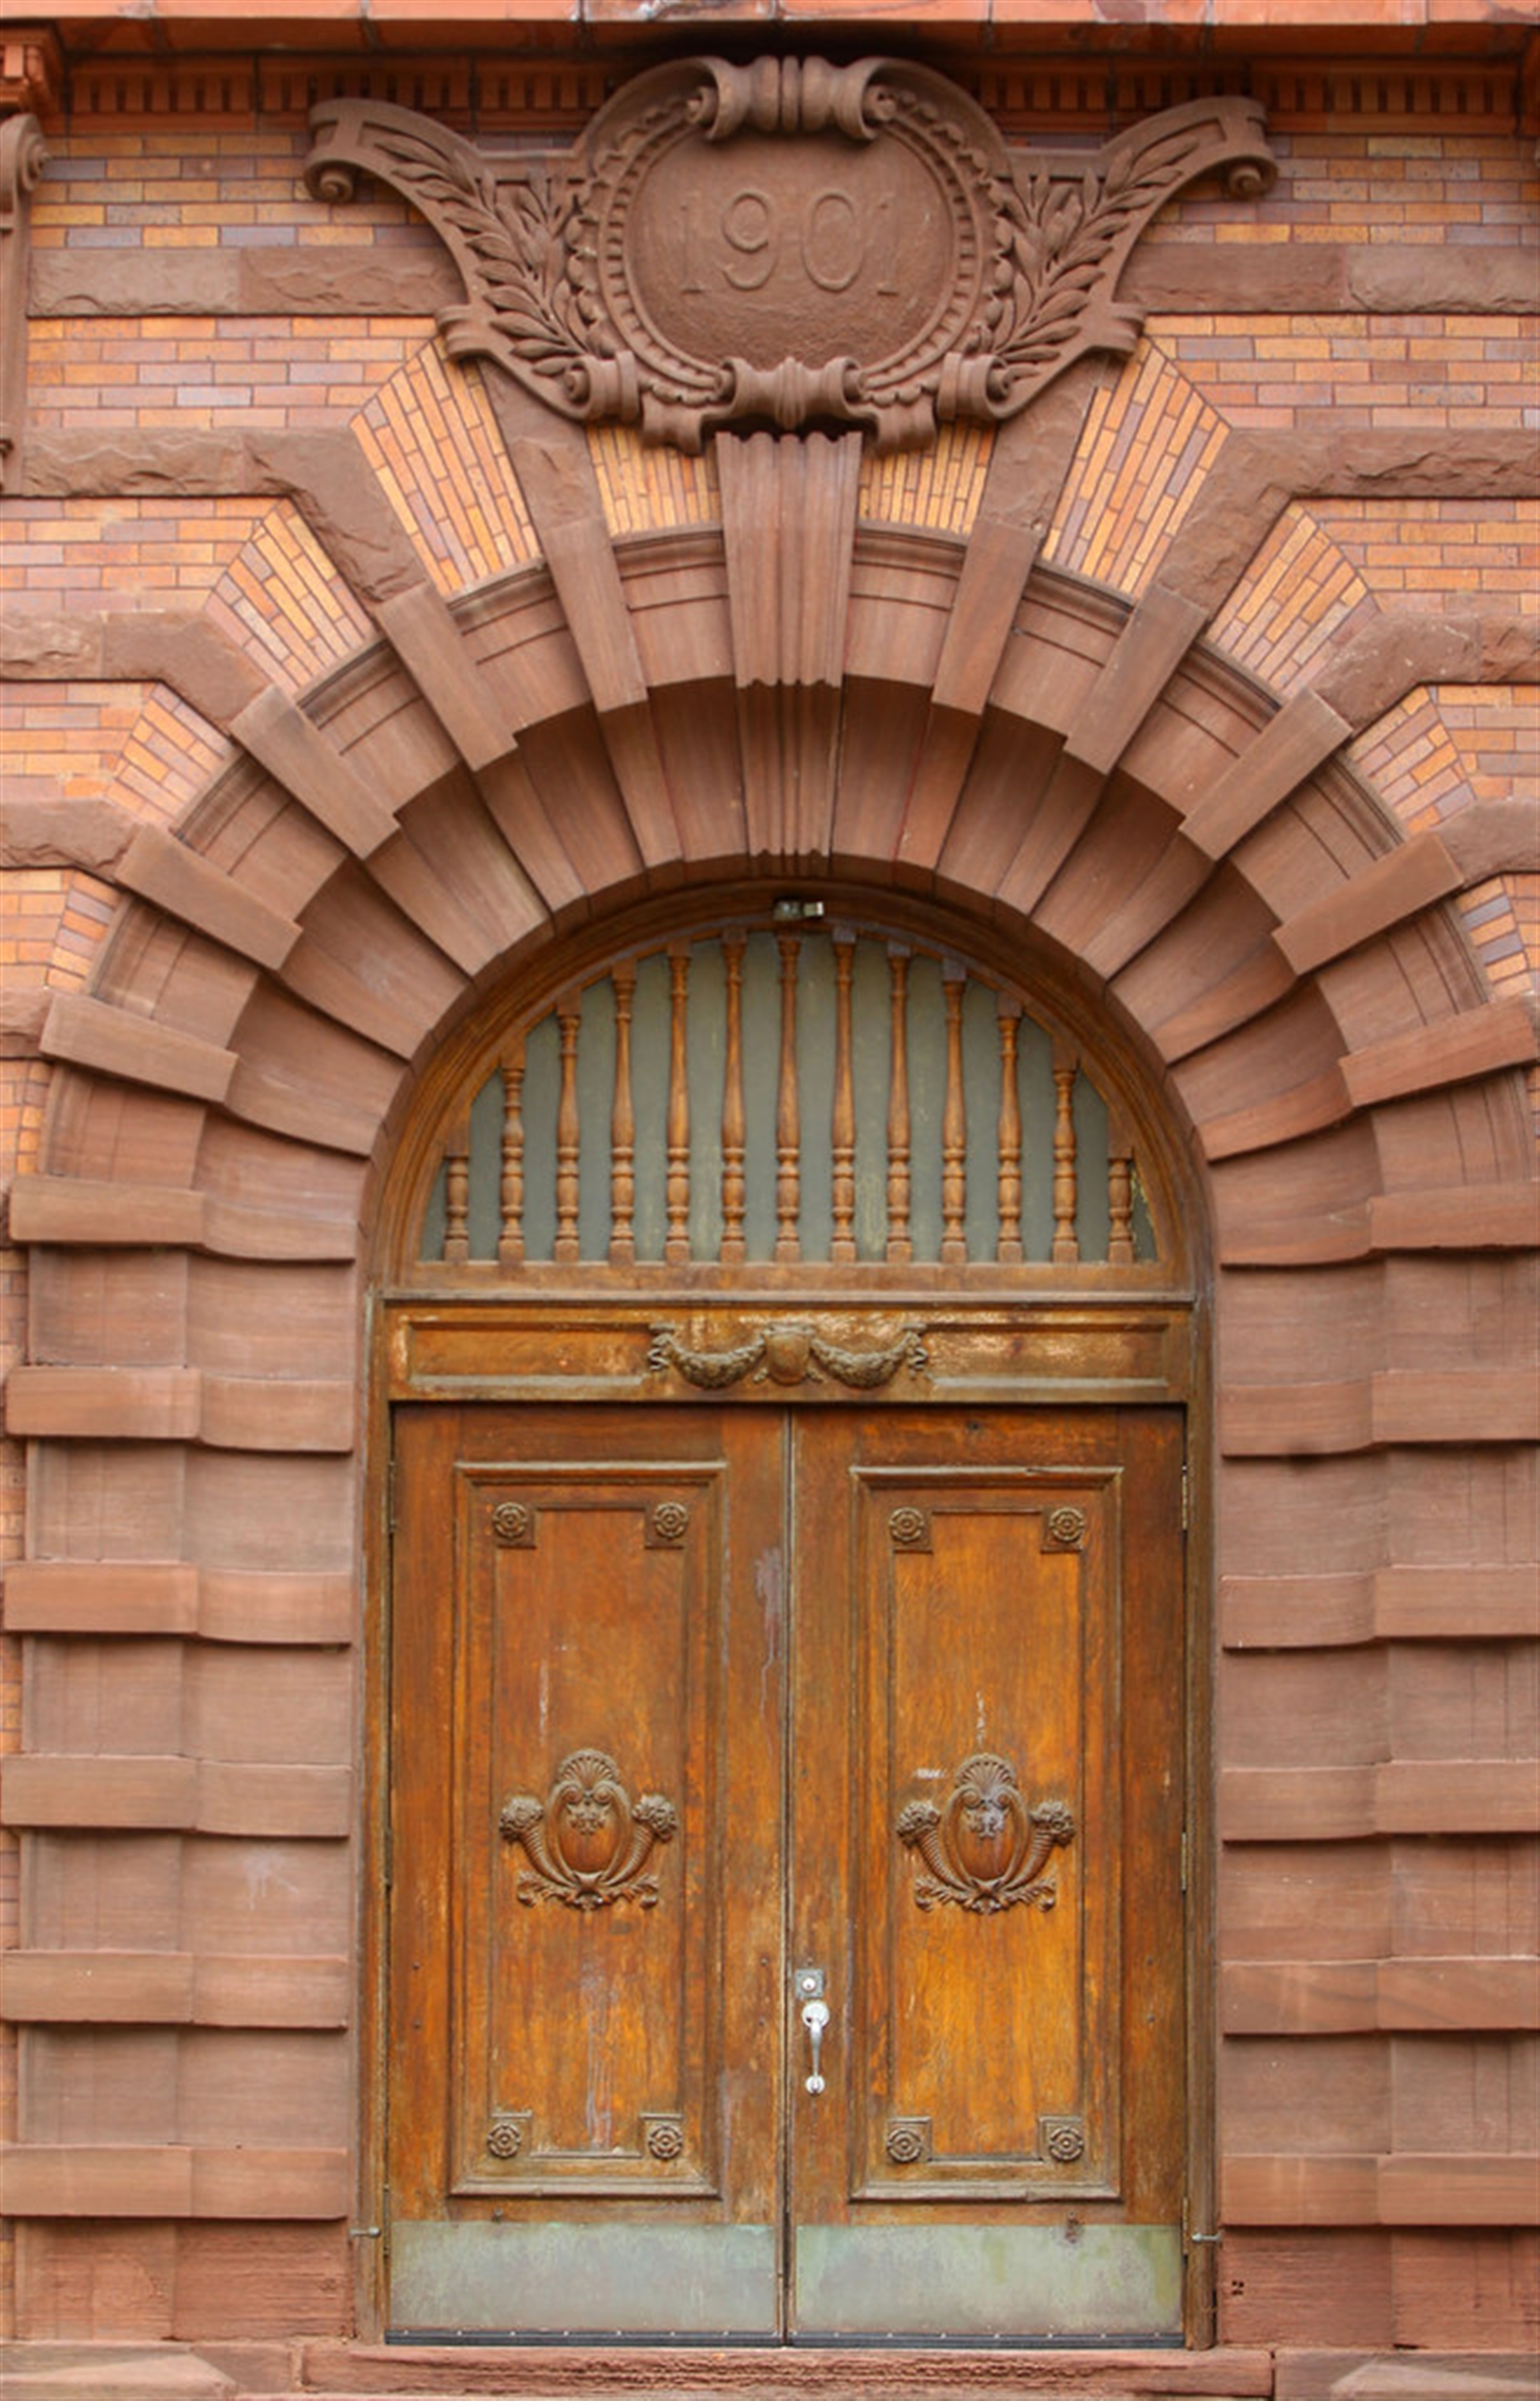 The large oak front doors of Lafayette High School, officially opened on Sept. 10, 1903. Over 1,000 students attended class on the first day of school. The first principal was Arthur Detmers.